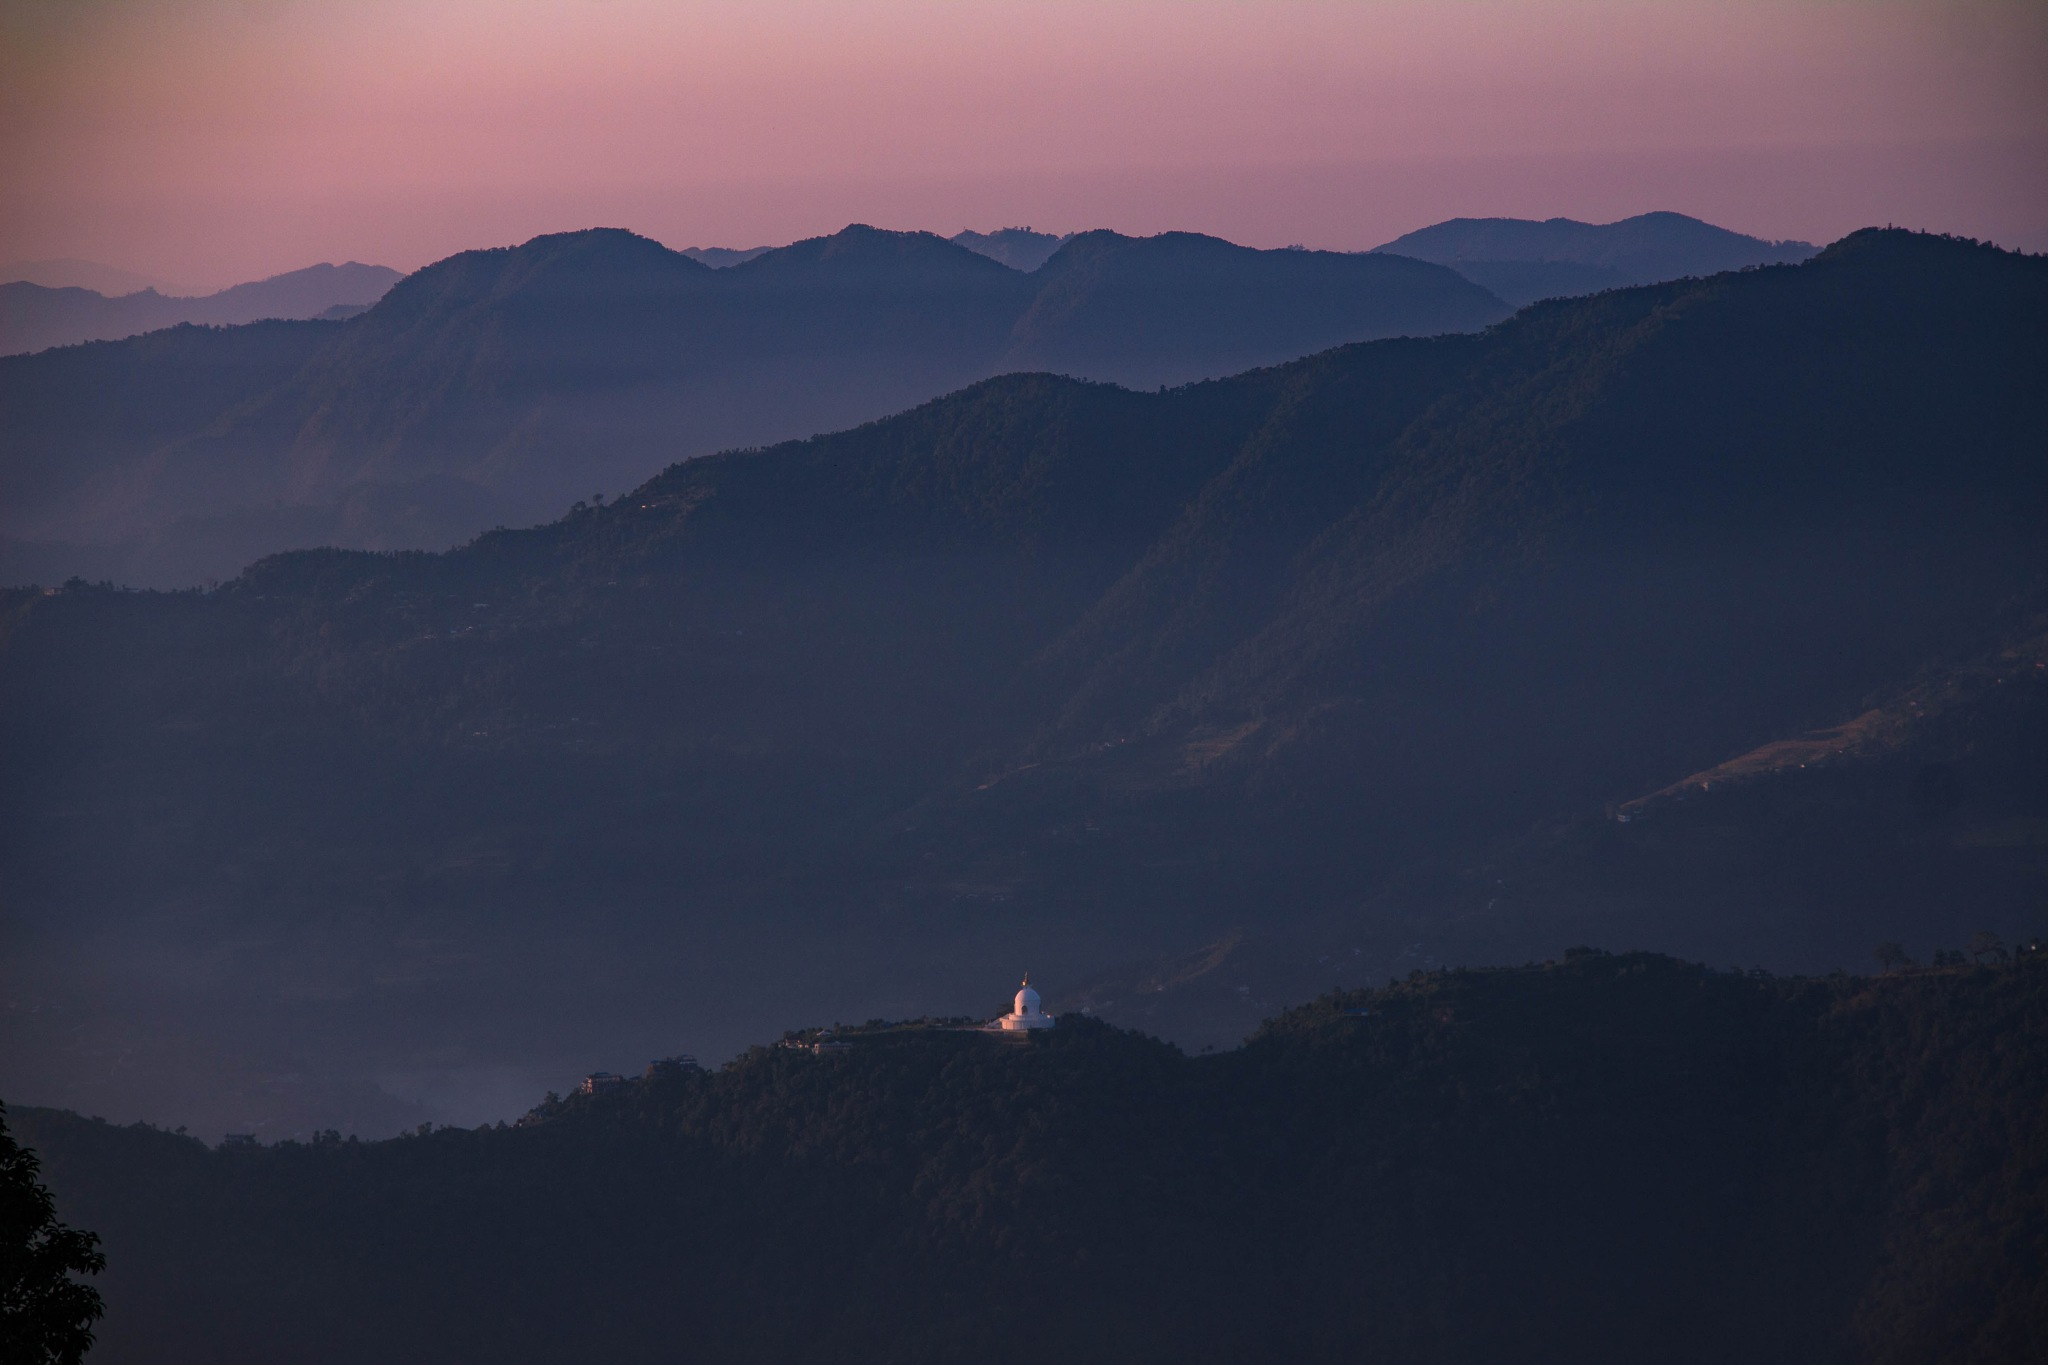 Nepal is basically really beautiful for the nature and the religious sites. by Ganesh Rogers